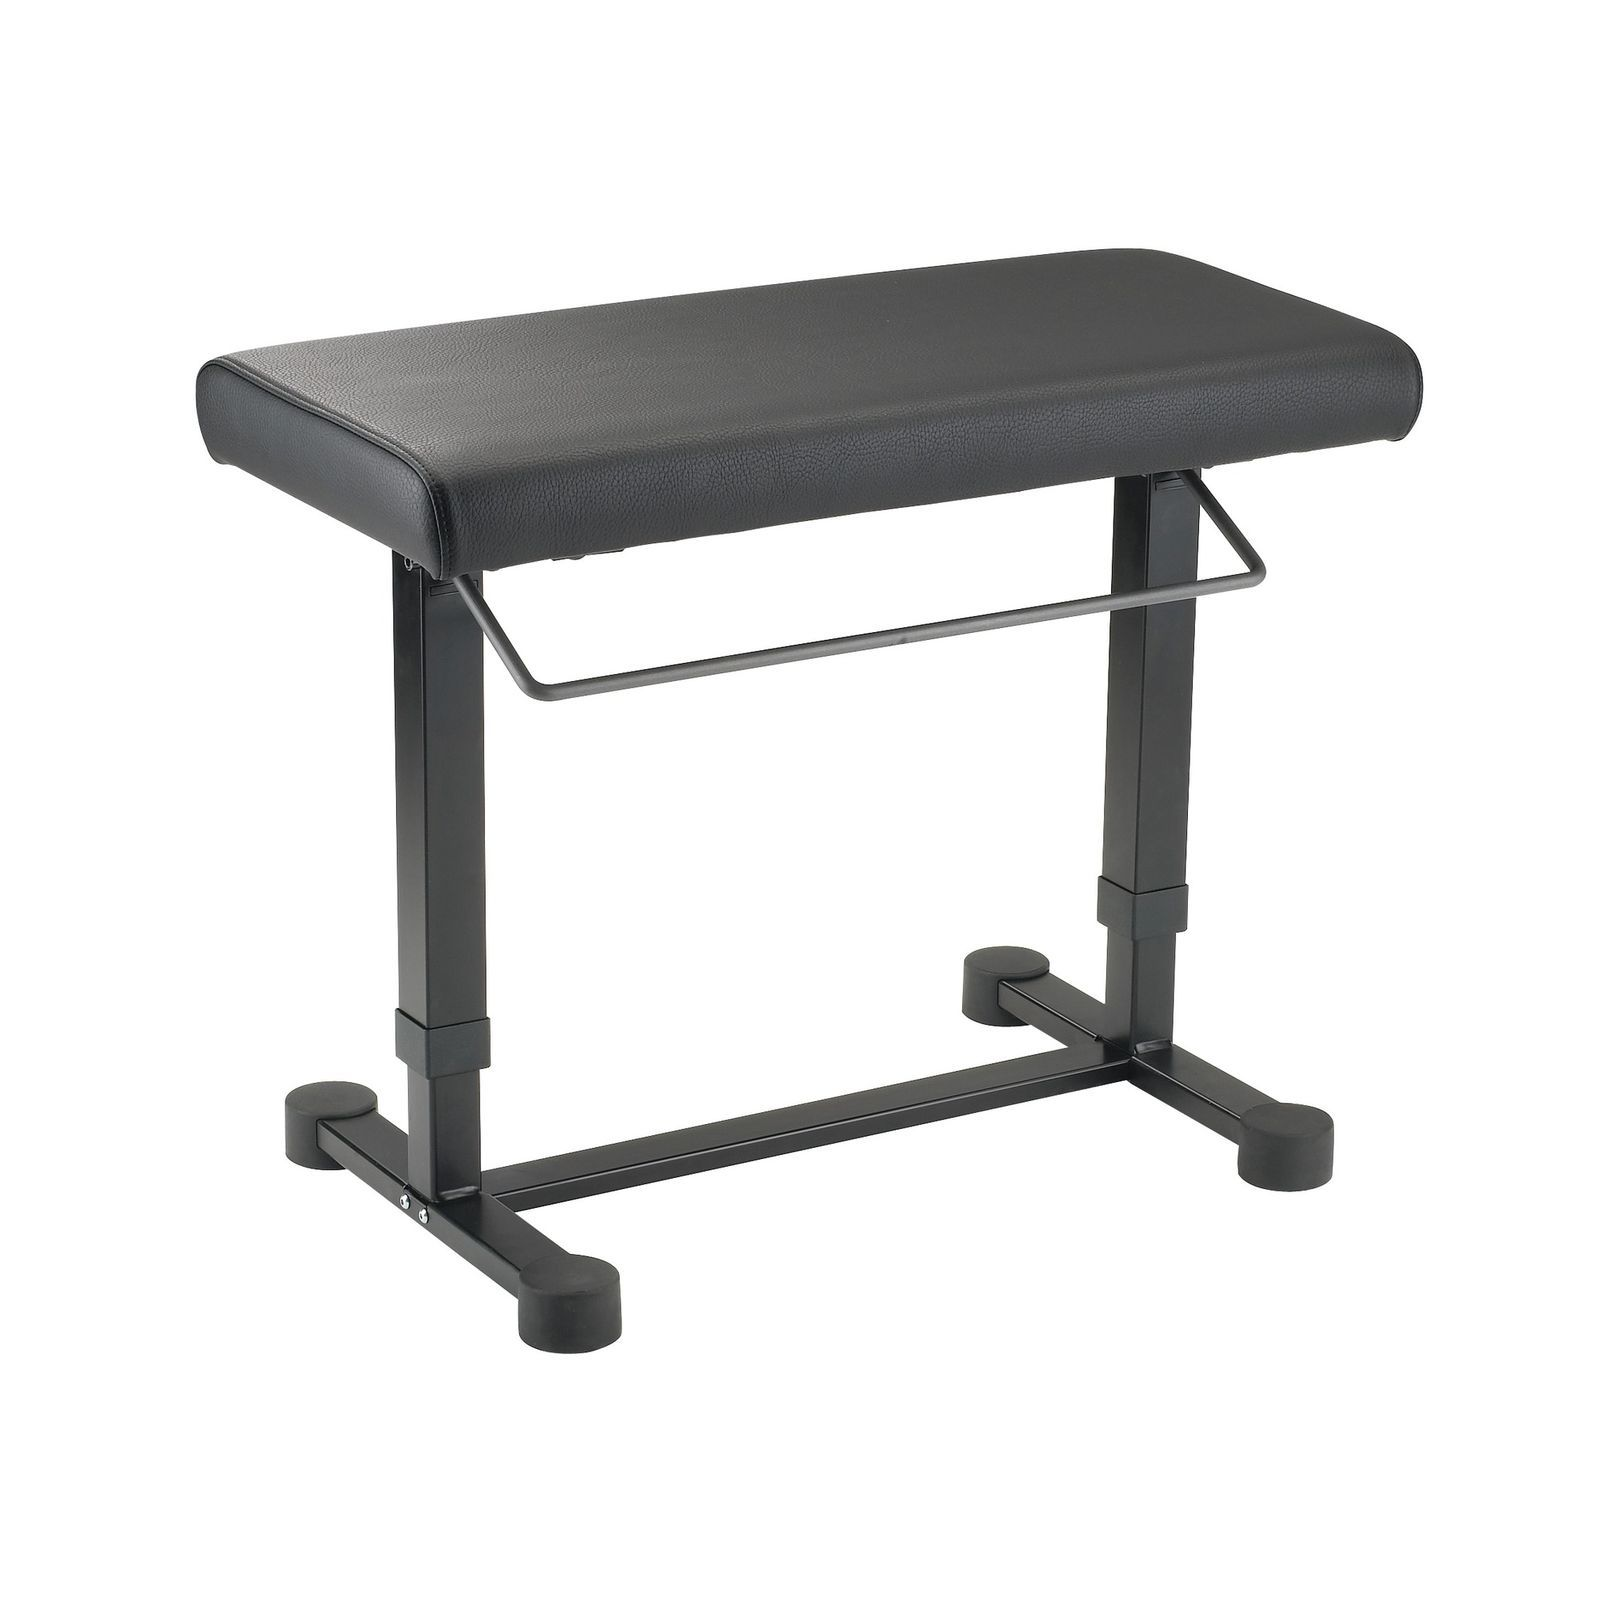 König & Meyer 14080 Piano Bench Uplift Synthetic leather, black Produktbillede